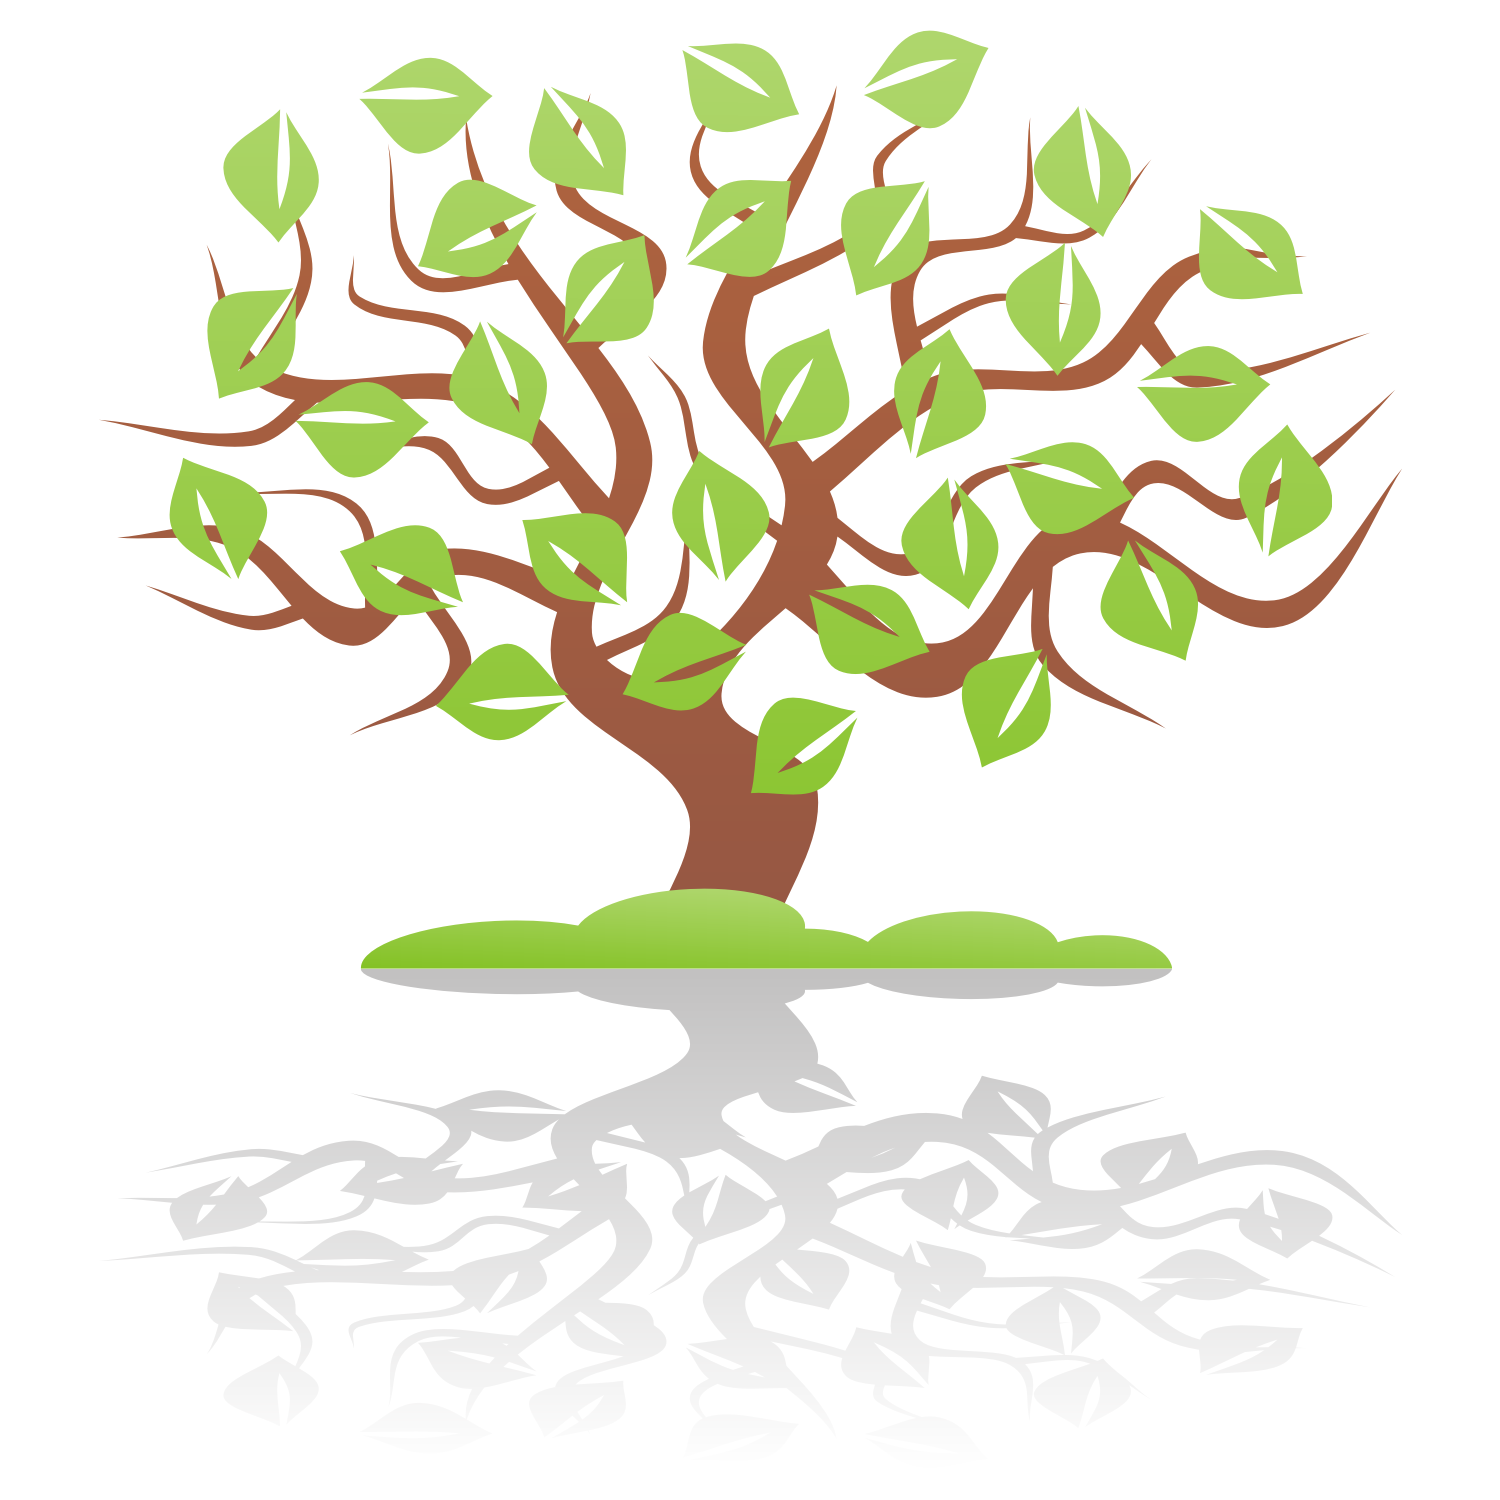 Free Tree Vector Png, Download Free Clip Art, Free Clip Art on.